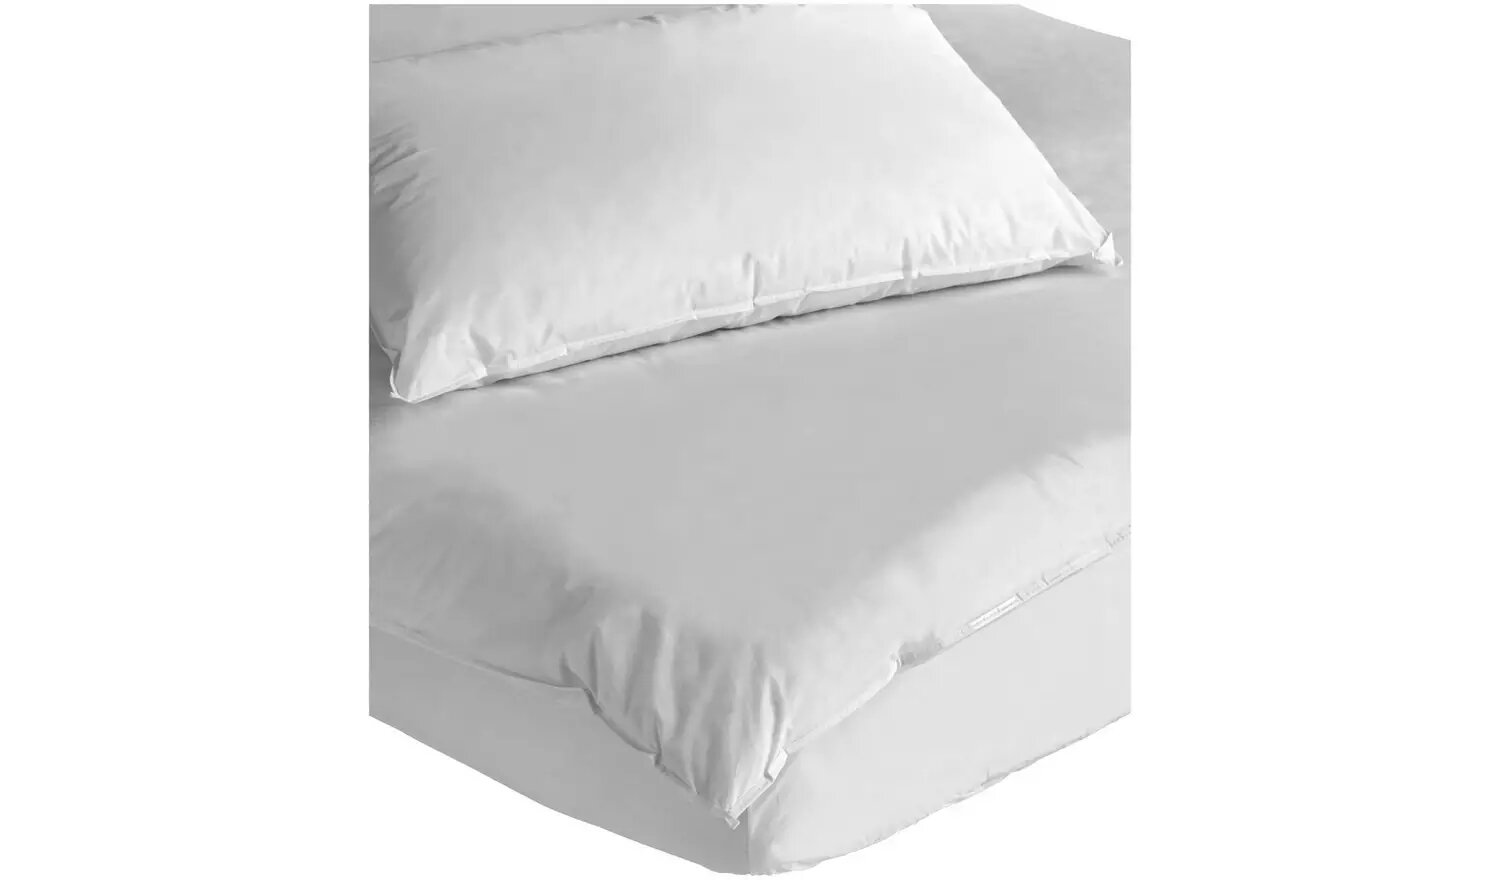 Argos Home Waterproof Bedding Set, Single.